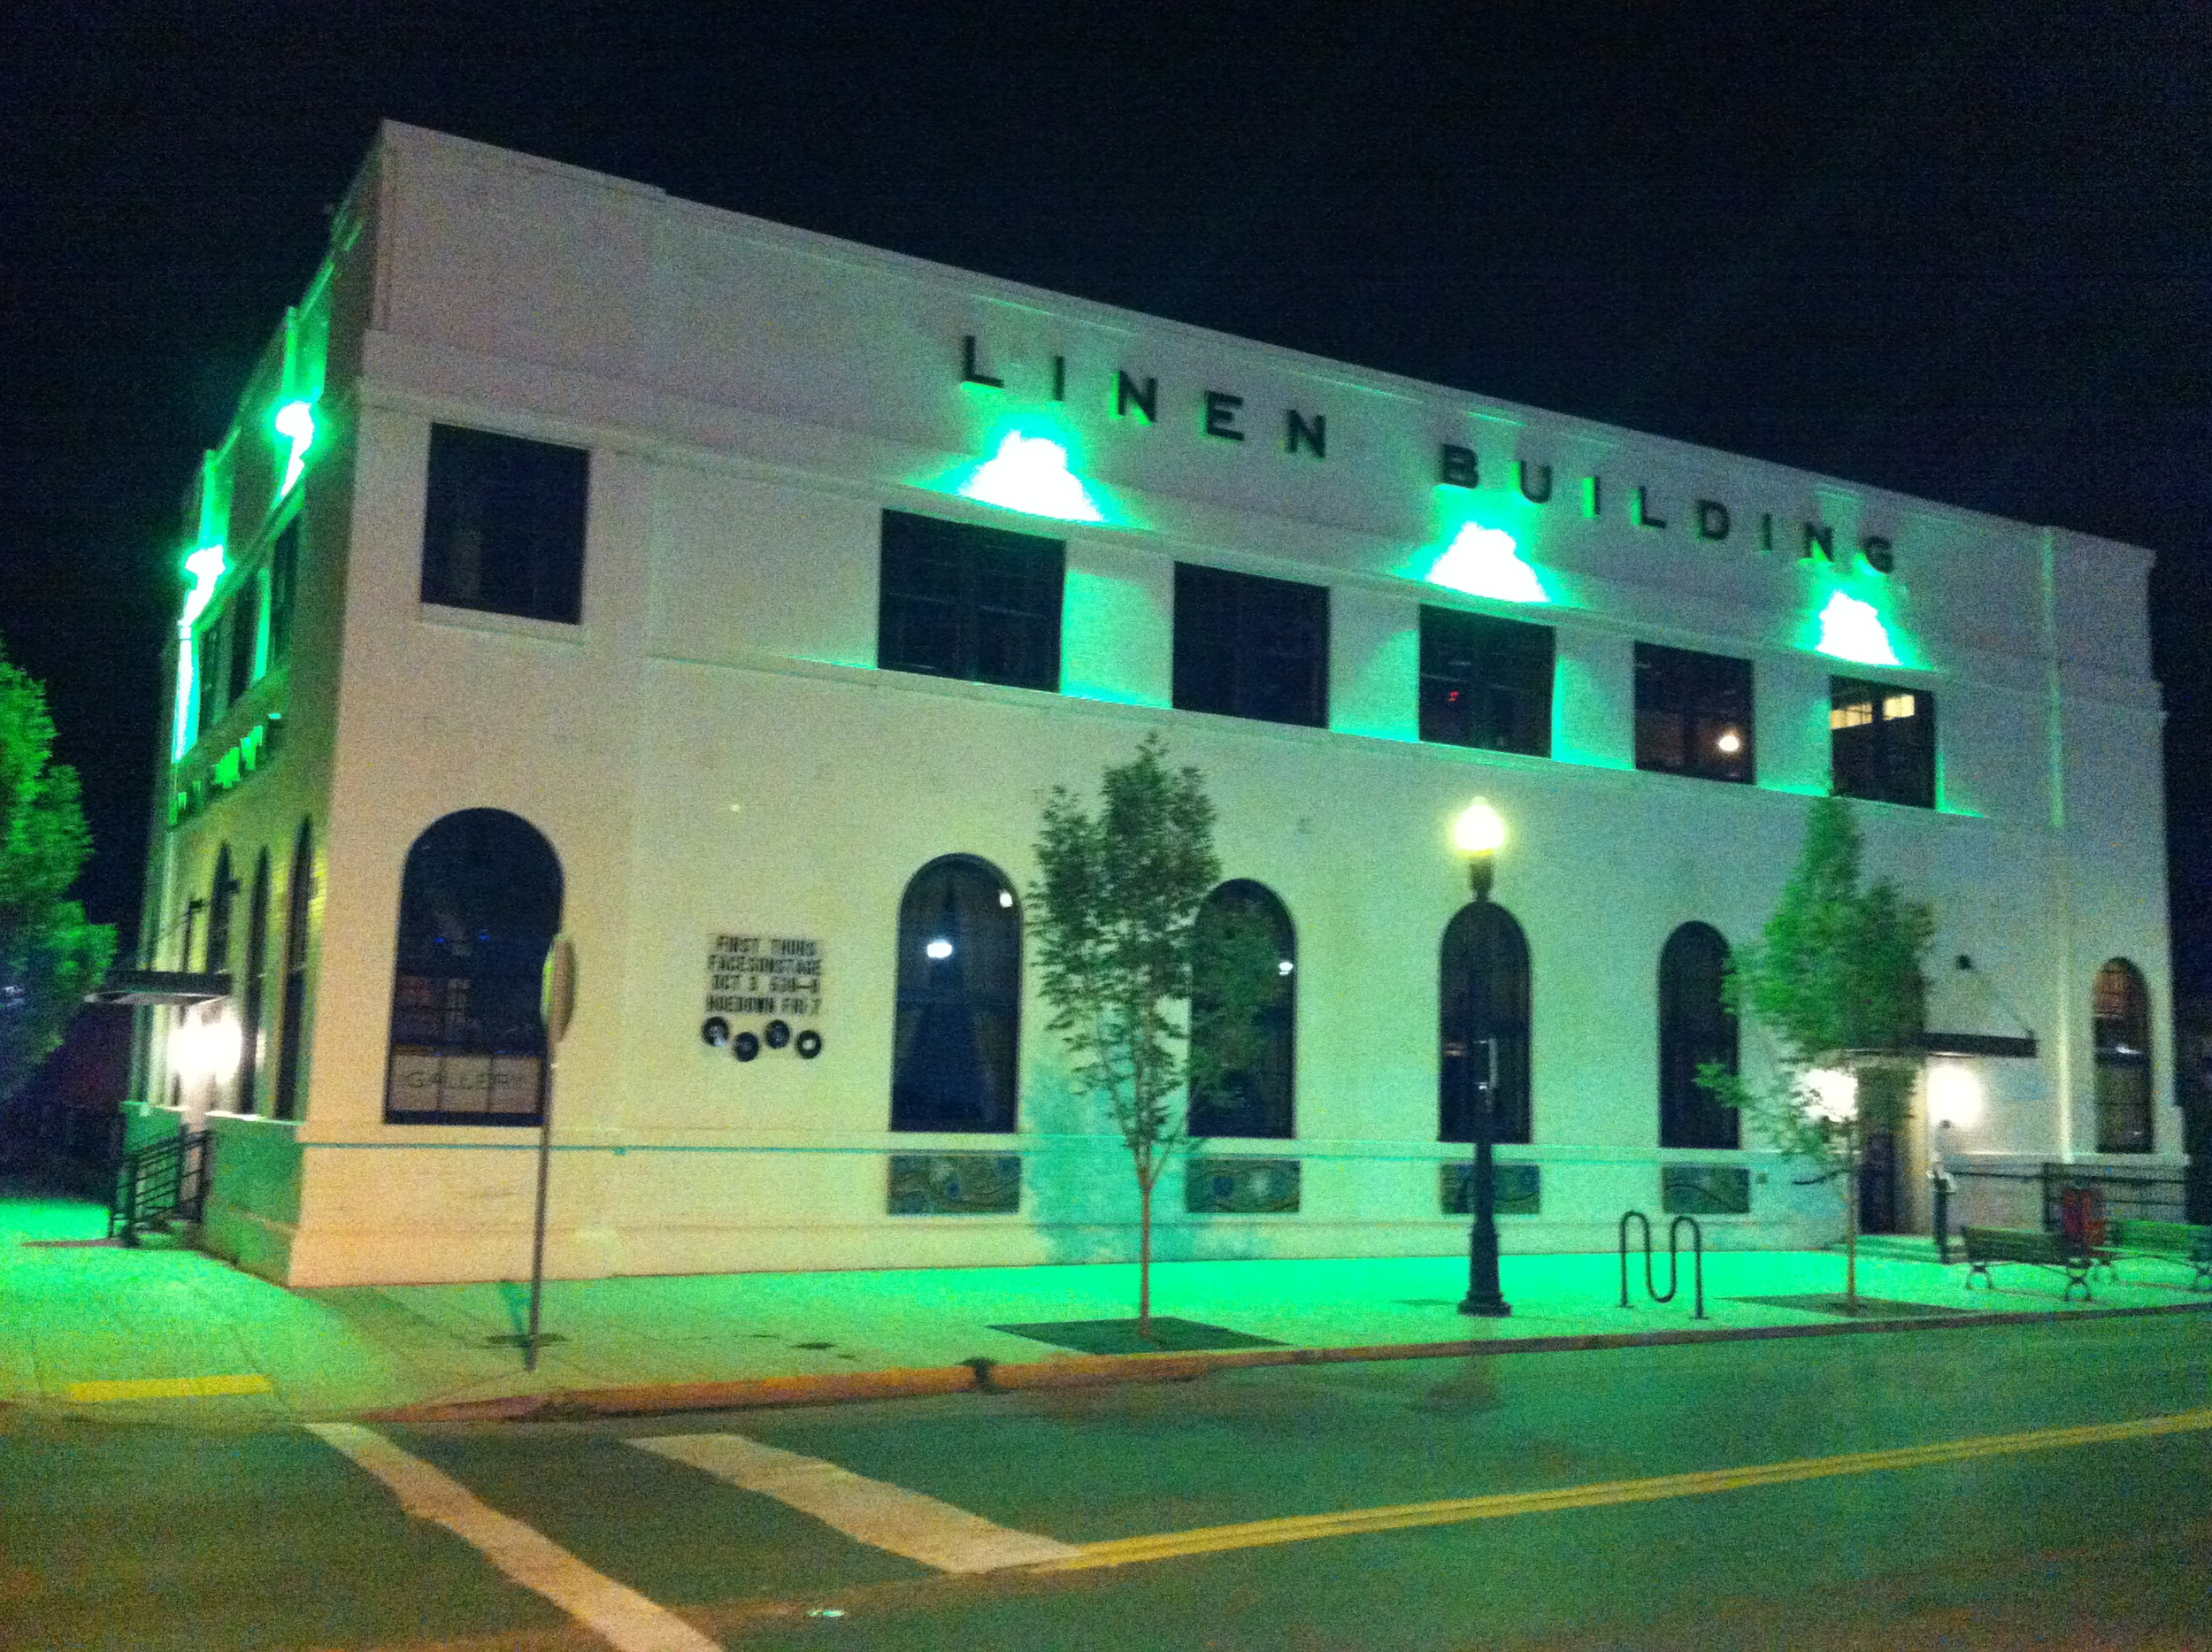 The Linen Building is like a white ghost by day and has a South Beach glow at night.